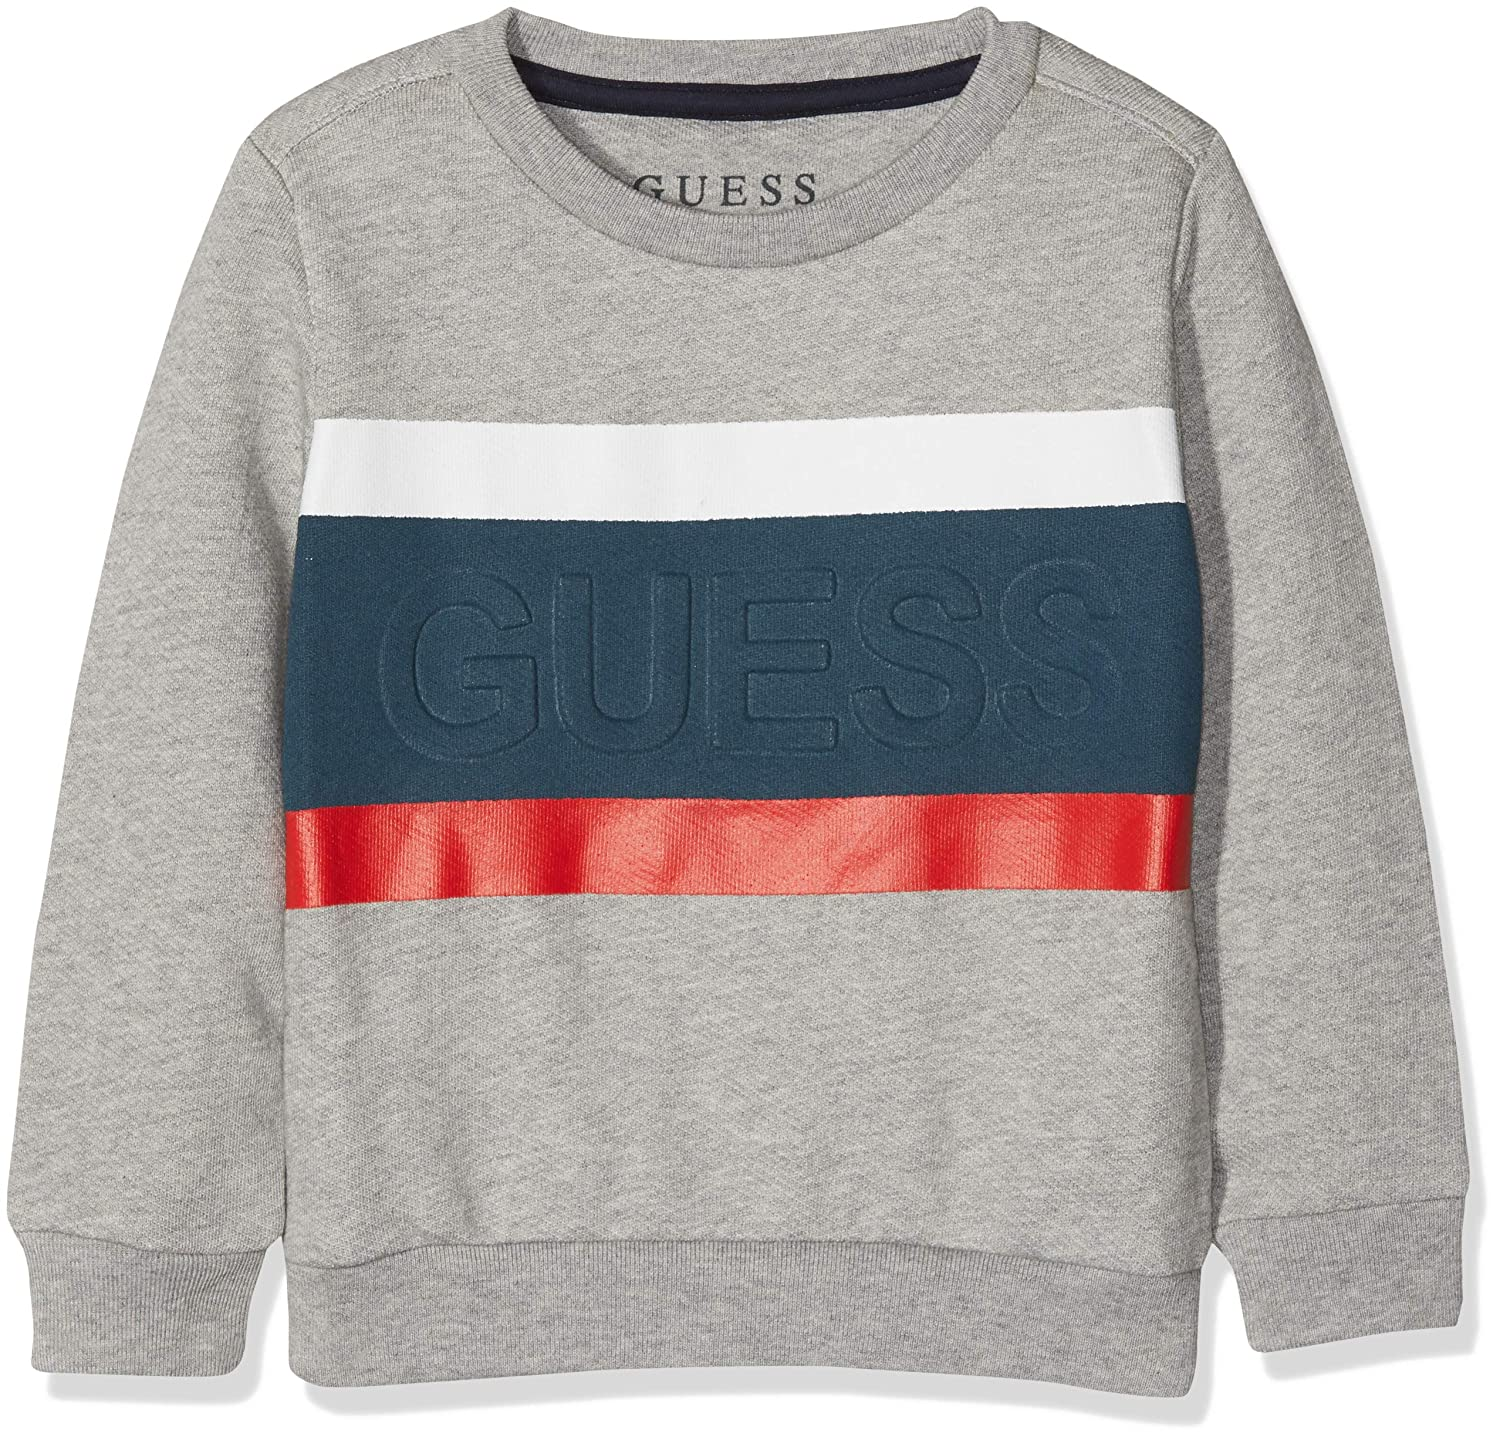 Guess Felpe Manica Lunga LS Fleece, Sweat-Shirt À Capuche Sport Bébé garçon, Gris (Light Heather Grey M Lhy), 86 (Taille Fabricant: 2) N83Q09K5WK0